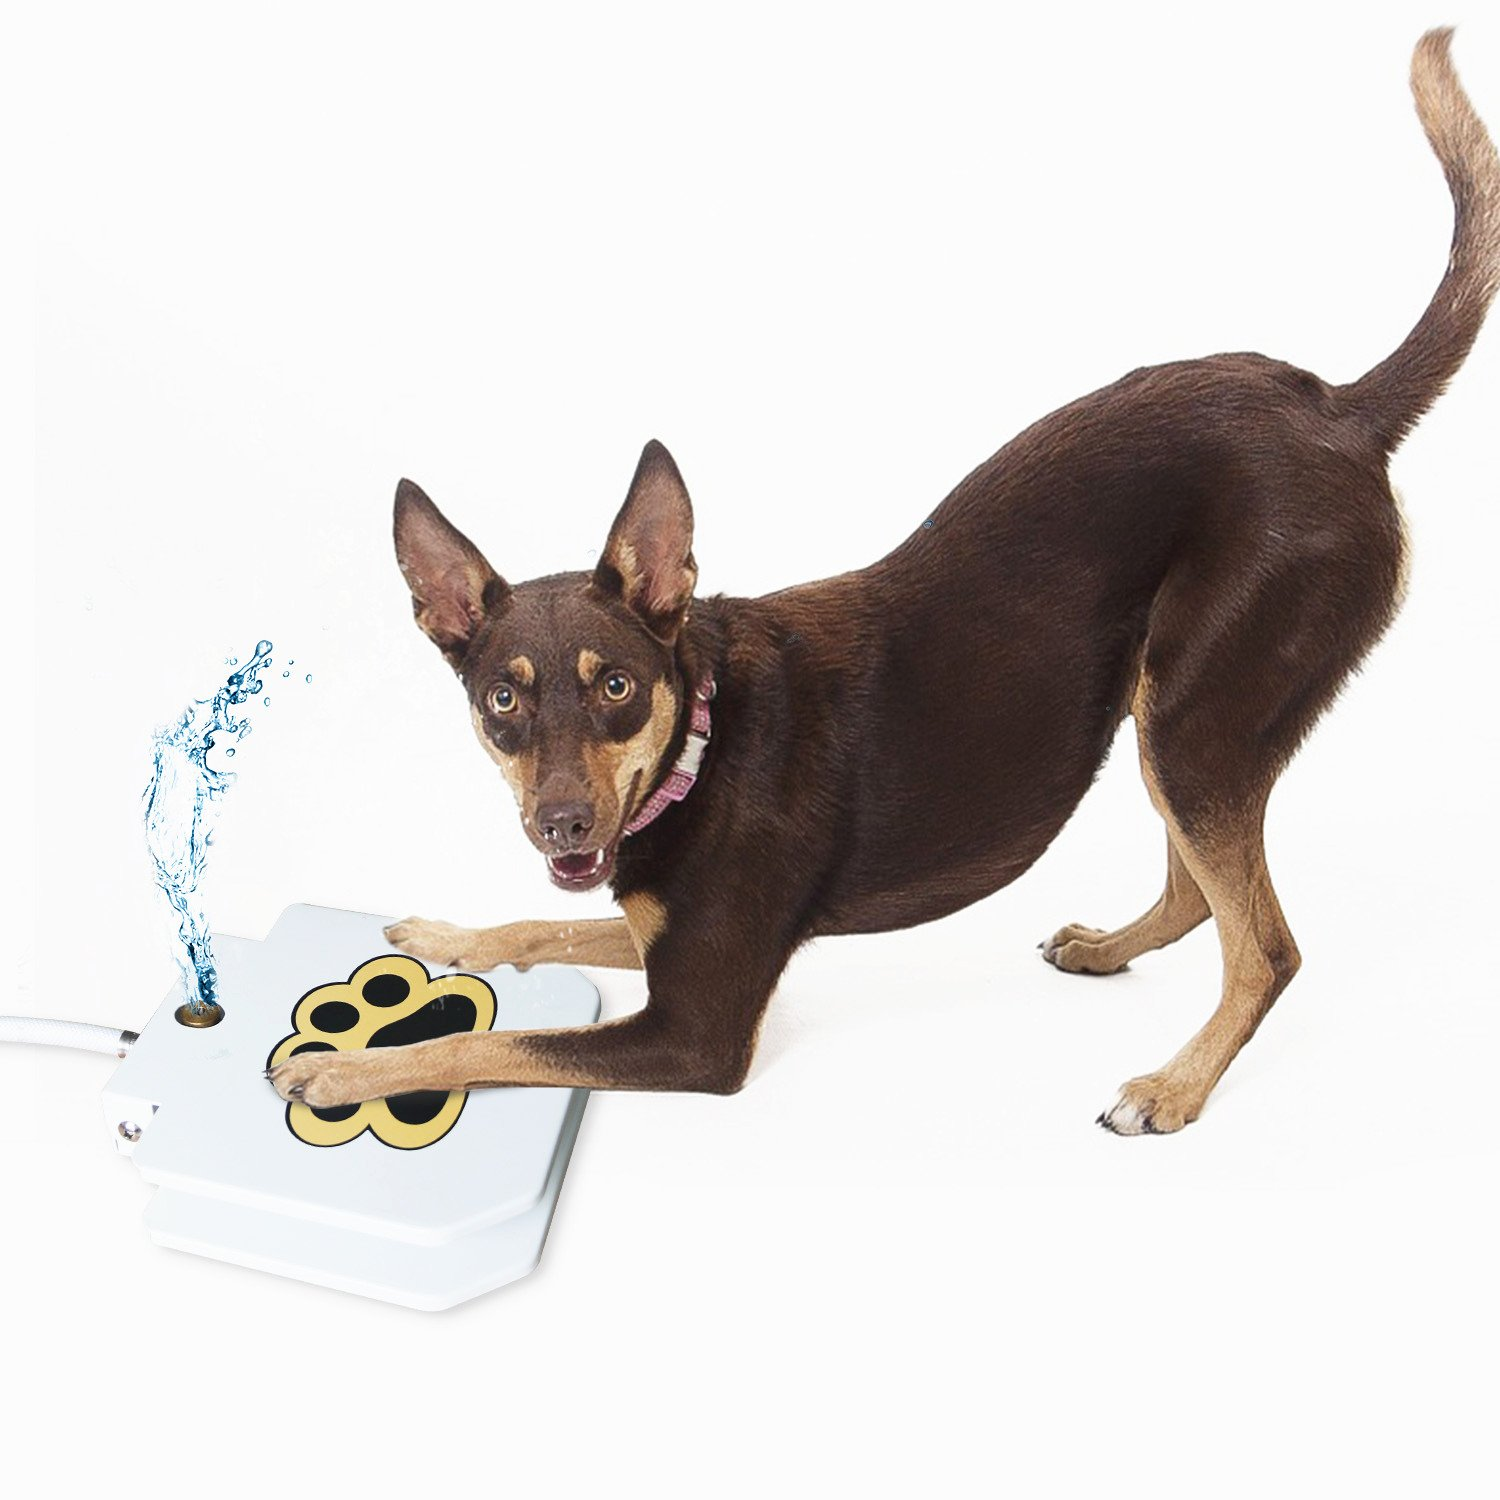 MATOP Dog Water Fountain - Outdoor Step-On Dog Water Dispenser Automatic Dog Waterer with 40'' Hose For Dog Drinking Clean Fresh Cold Water Water Fountains Outdoor